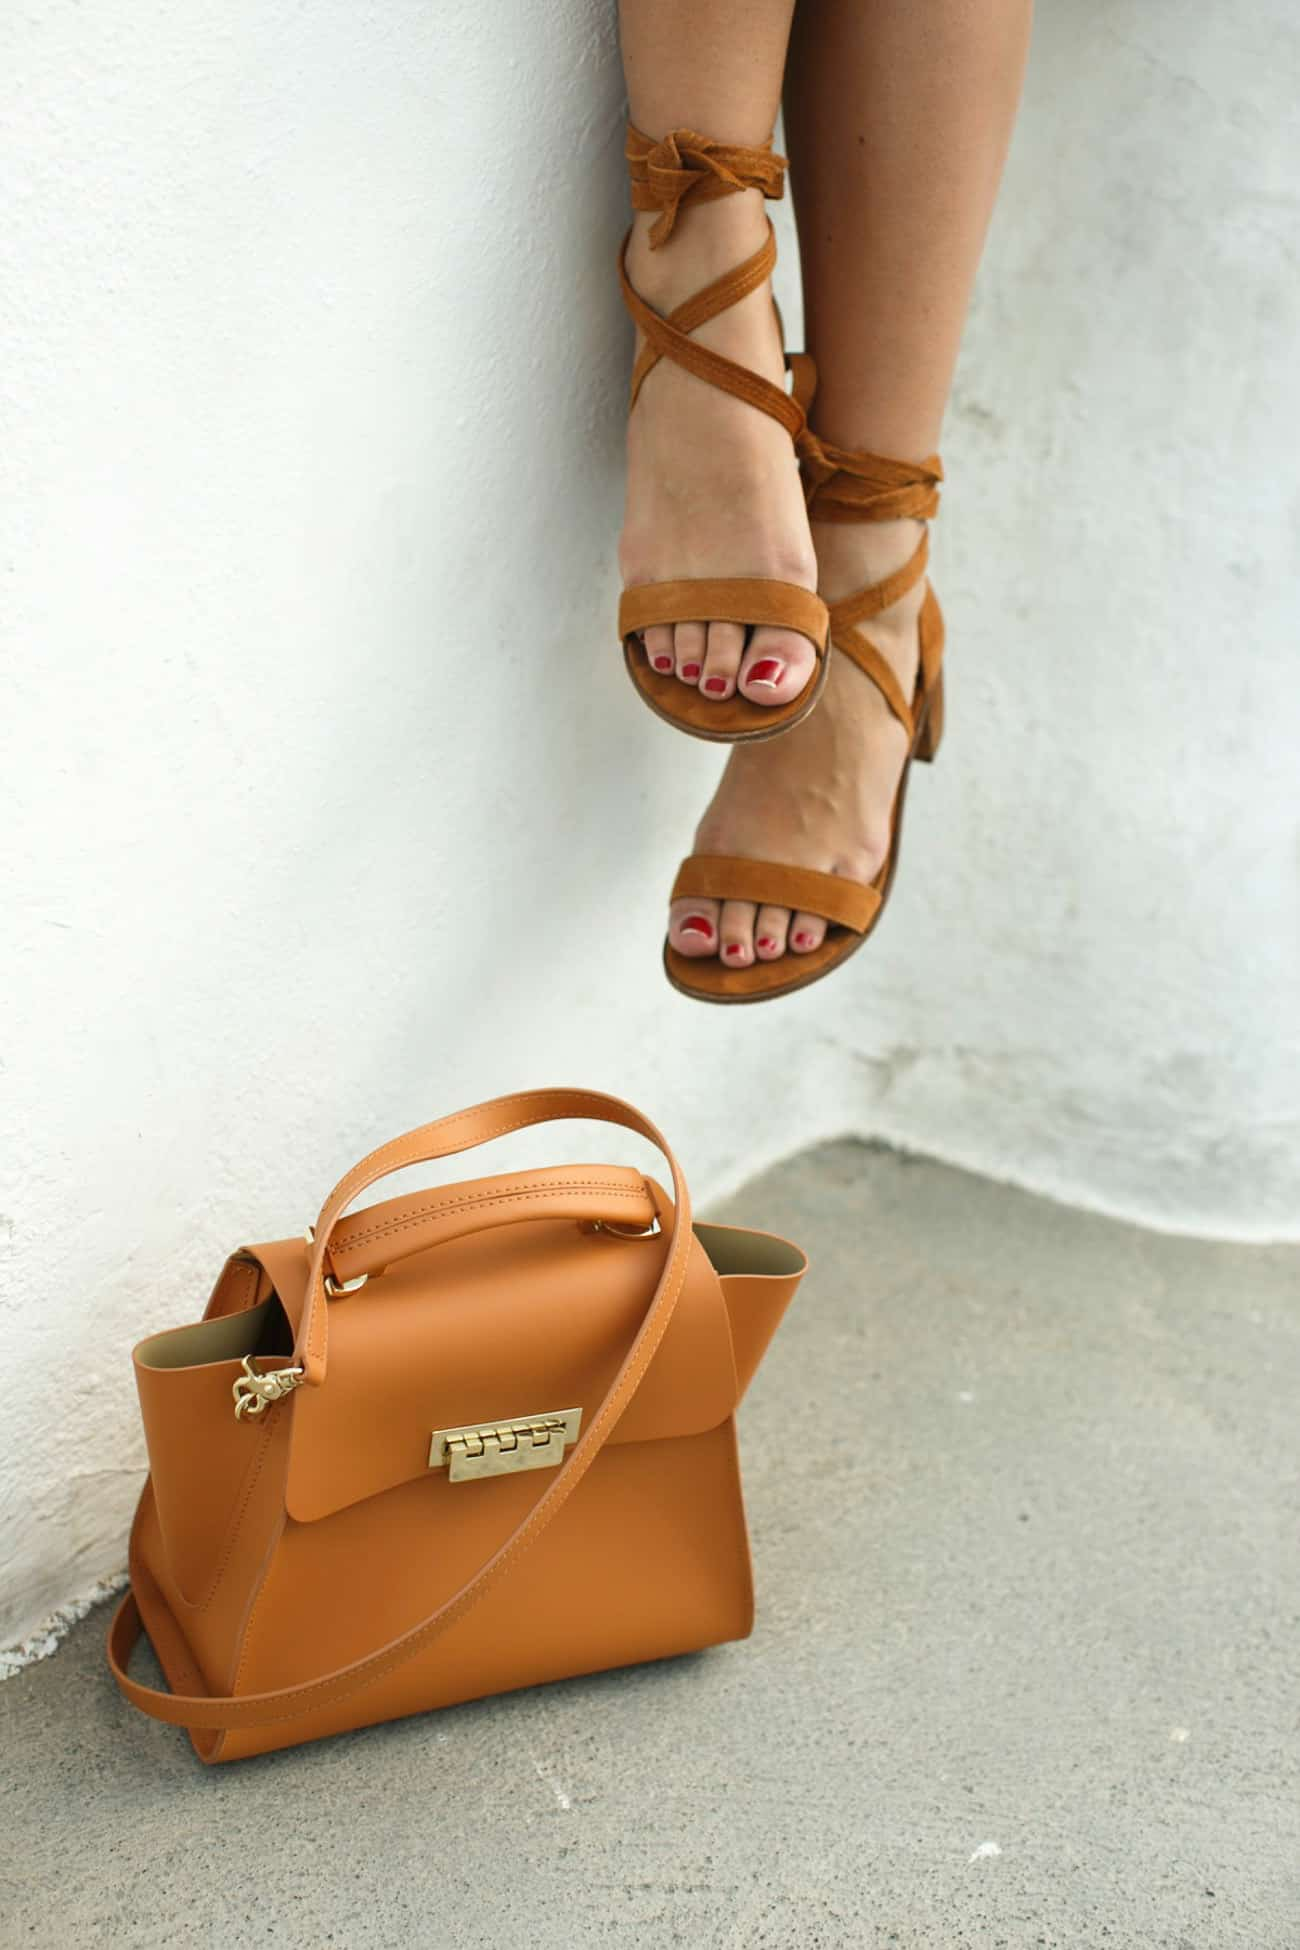 Steve Madden RAZZAA Sandals, Zac Posen Bag, Greece outfits, summer outfits - My Style Vita @mystylevita